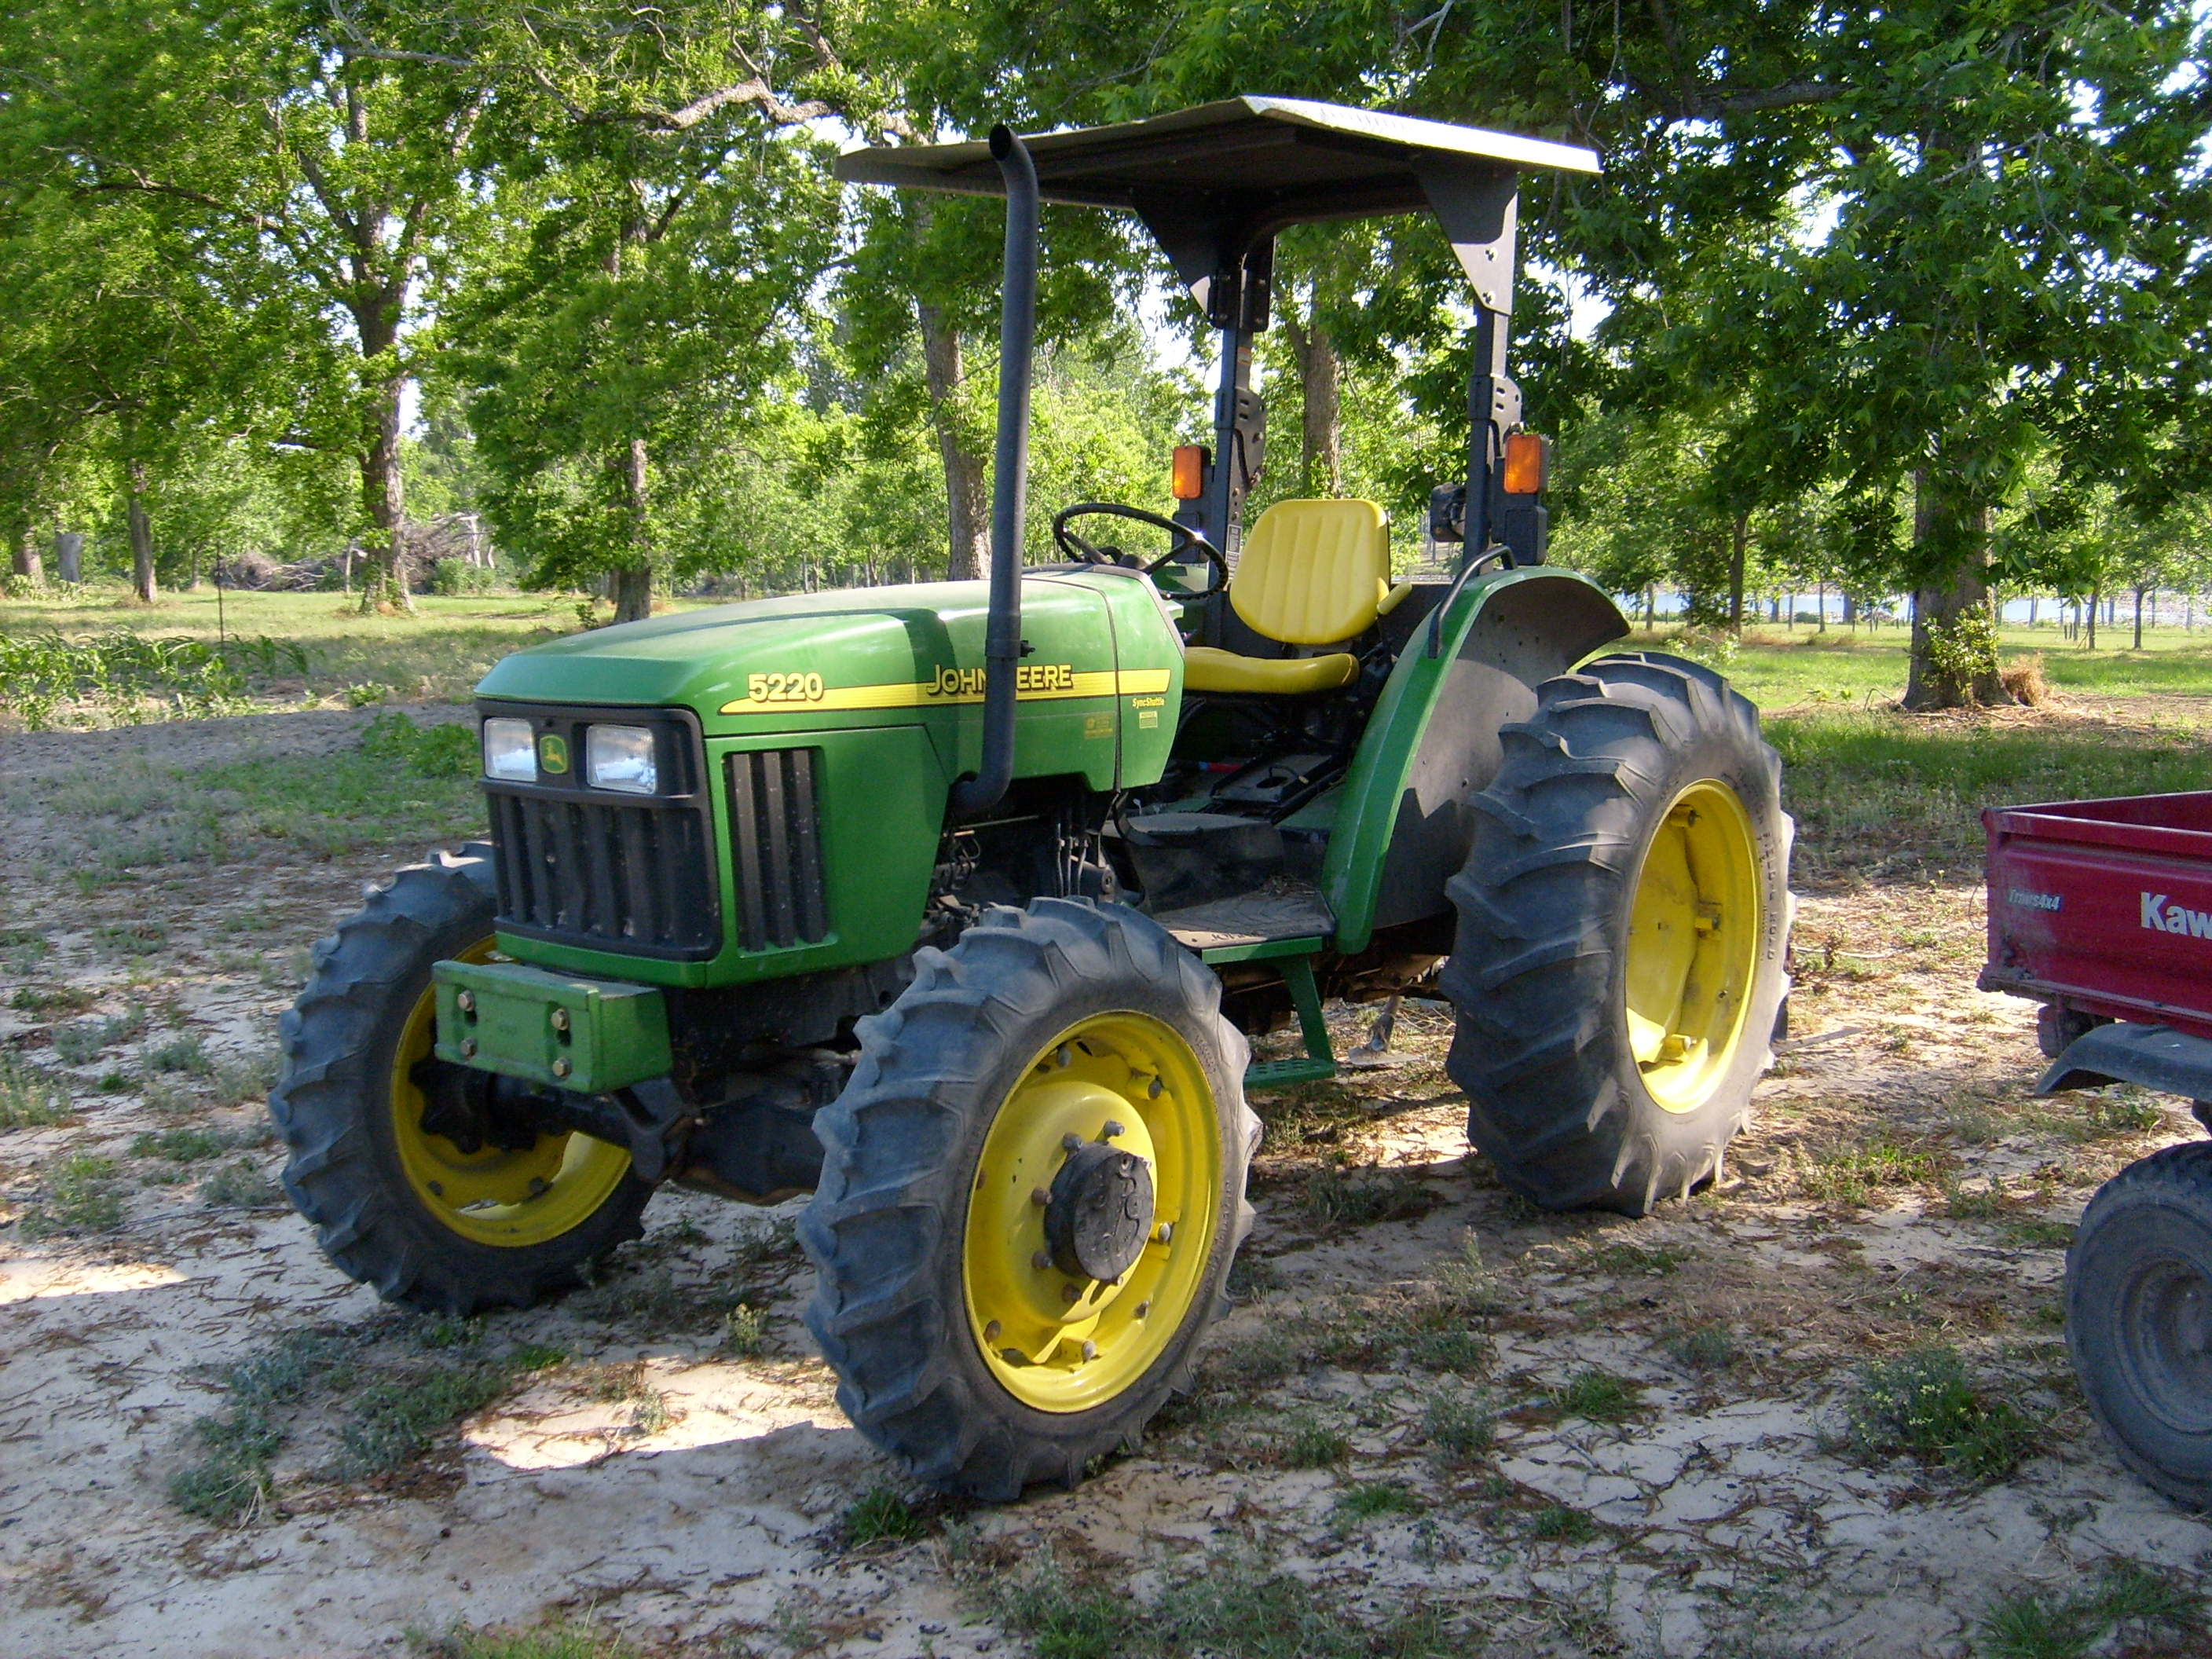 John Deere 5220 - Tractor & Construction Plant Wiki - The ...